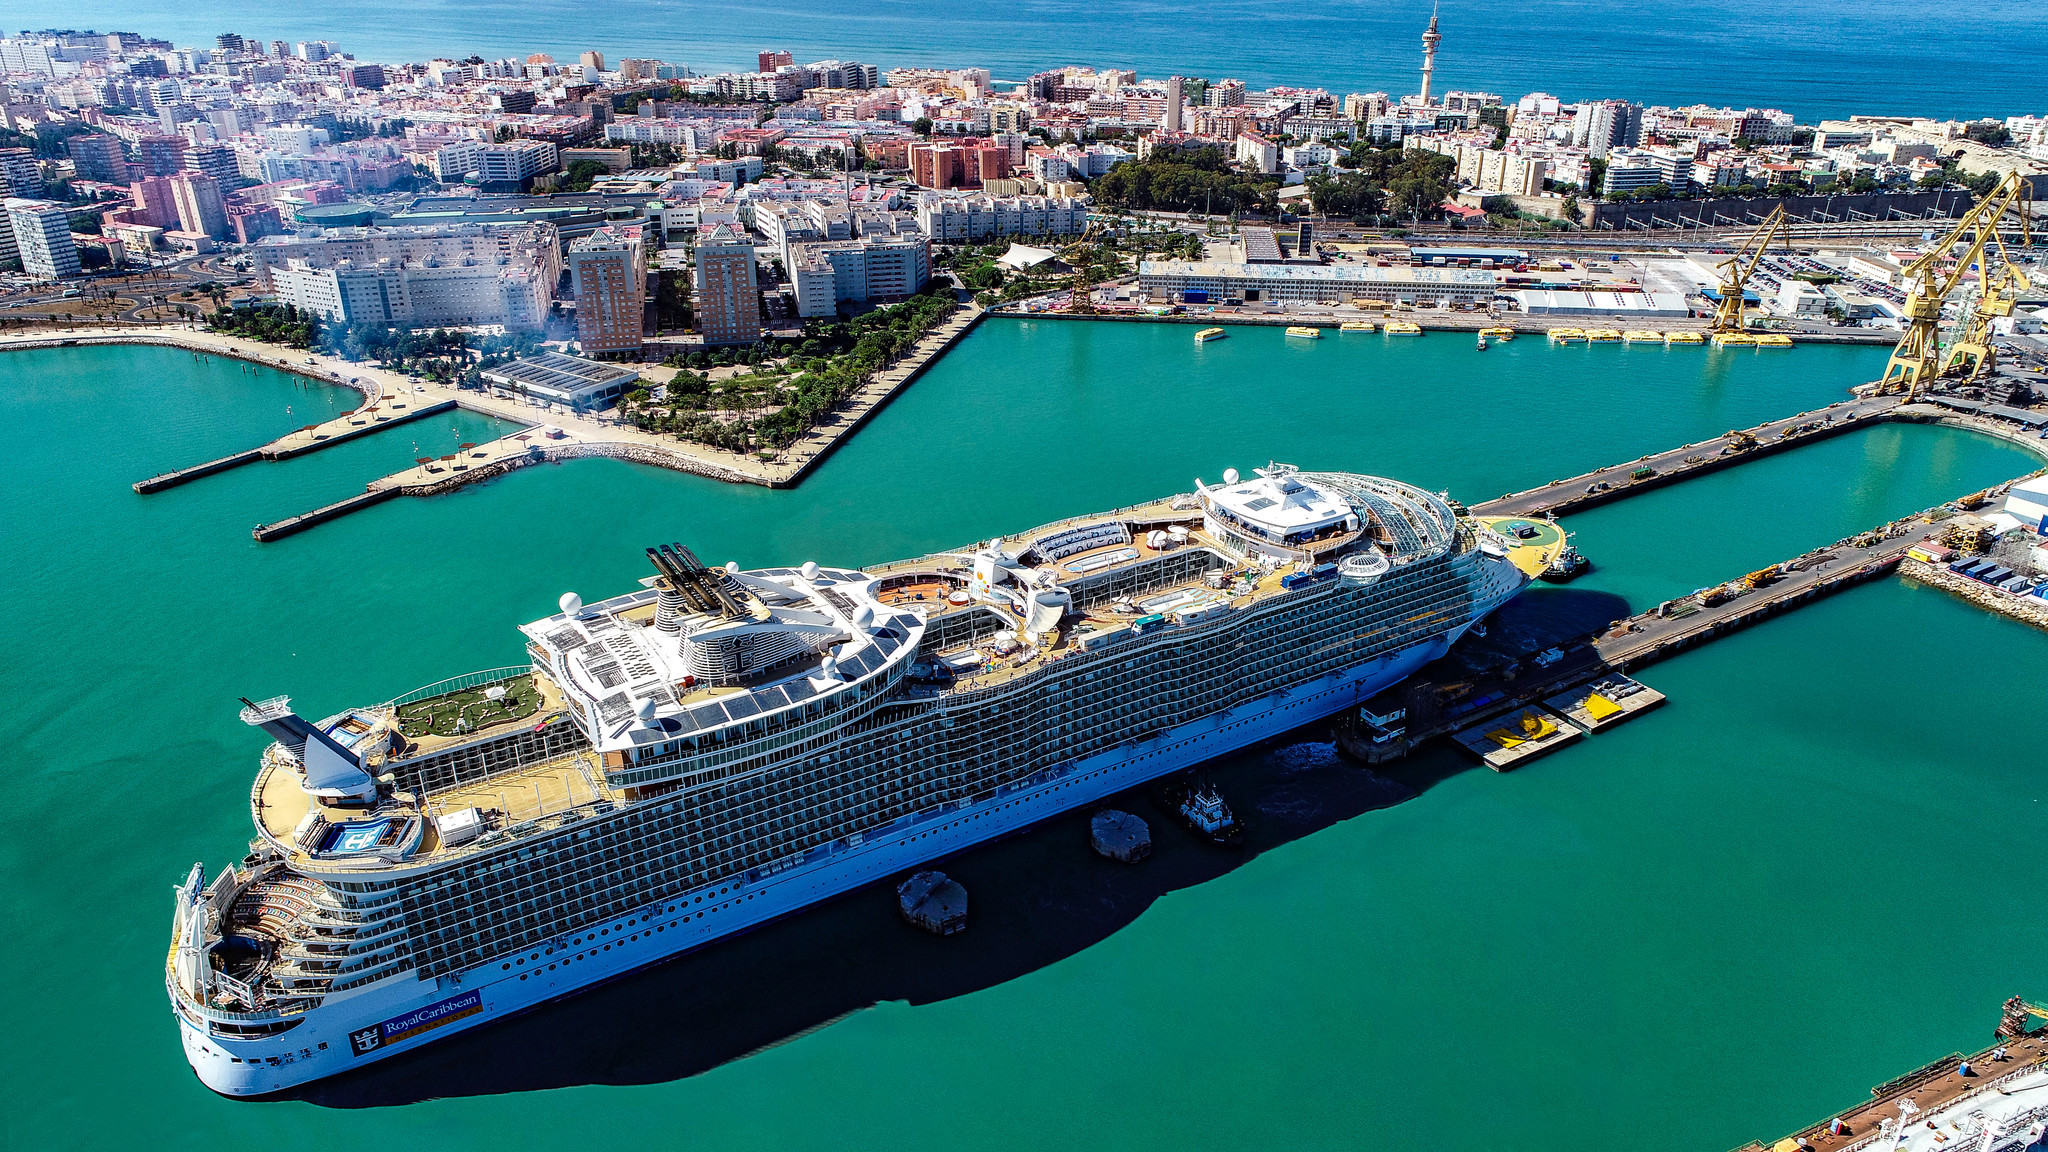 Body of Florida man found off coast of Puerto Rico after 'clean jump' from 10th story of Royal Caribbean cruise ship